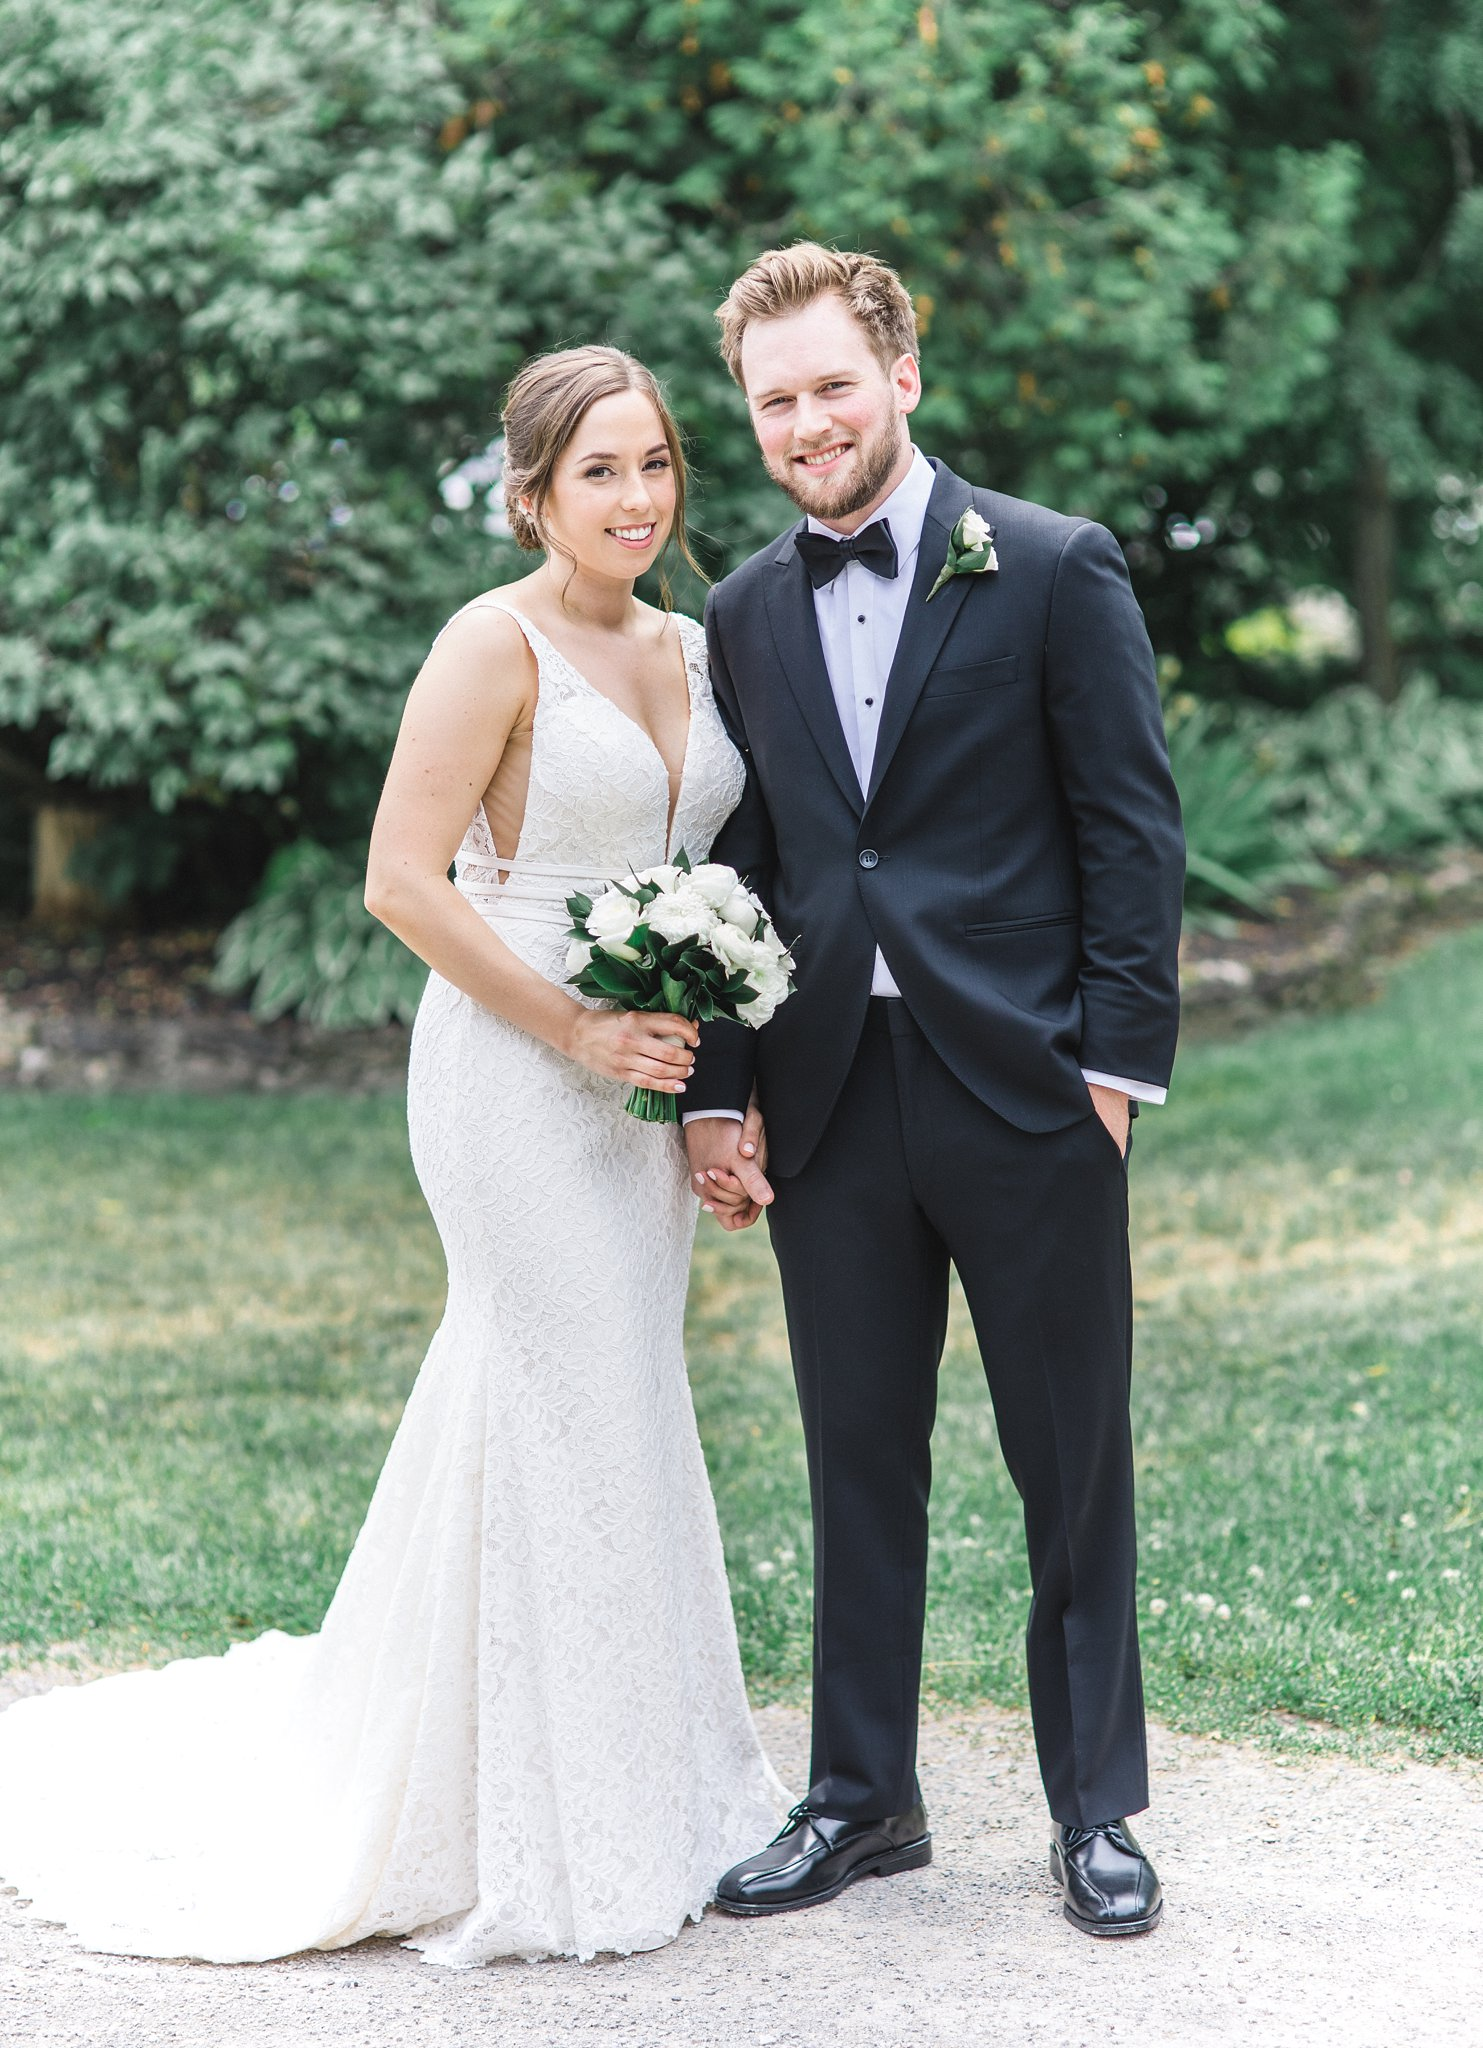 Classic black suite with bowtie with modern dress married at Stonefields, Amy Pinder Photography